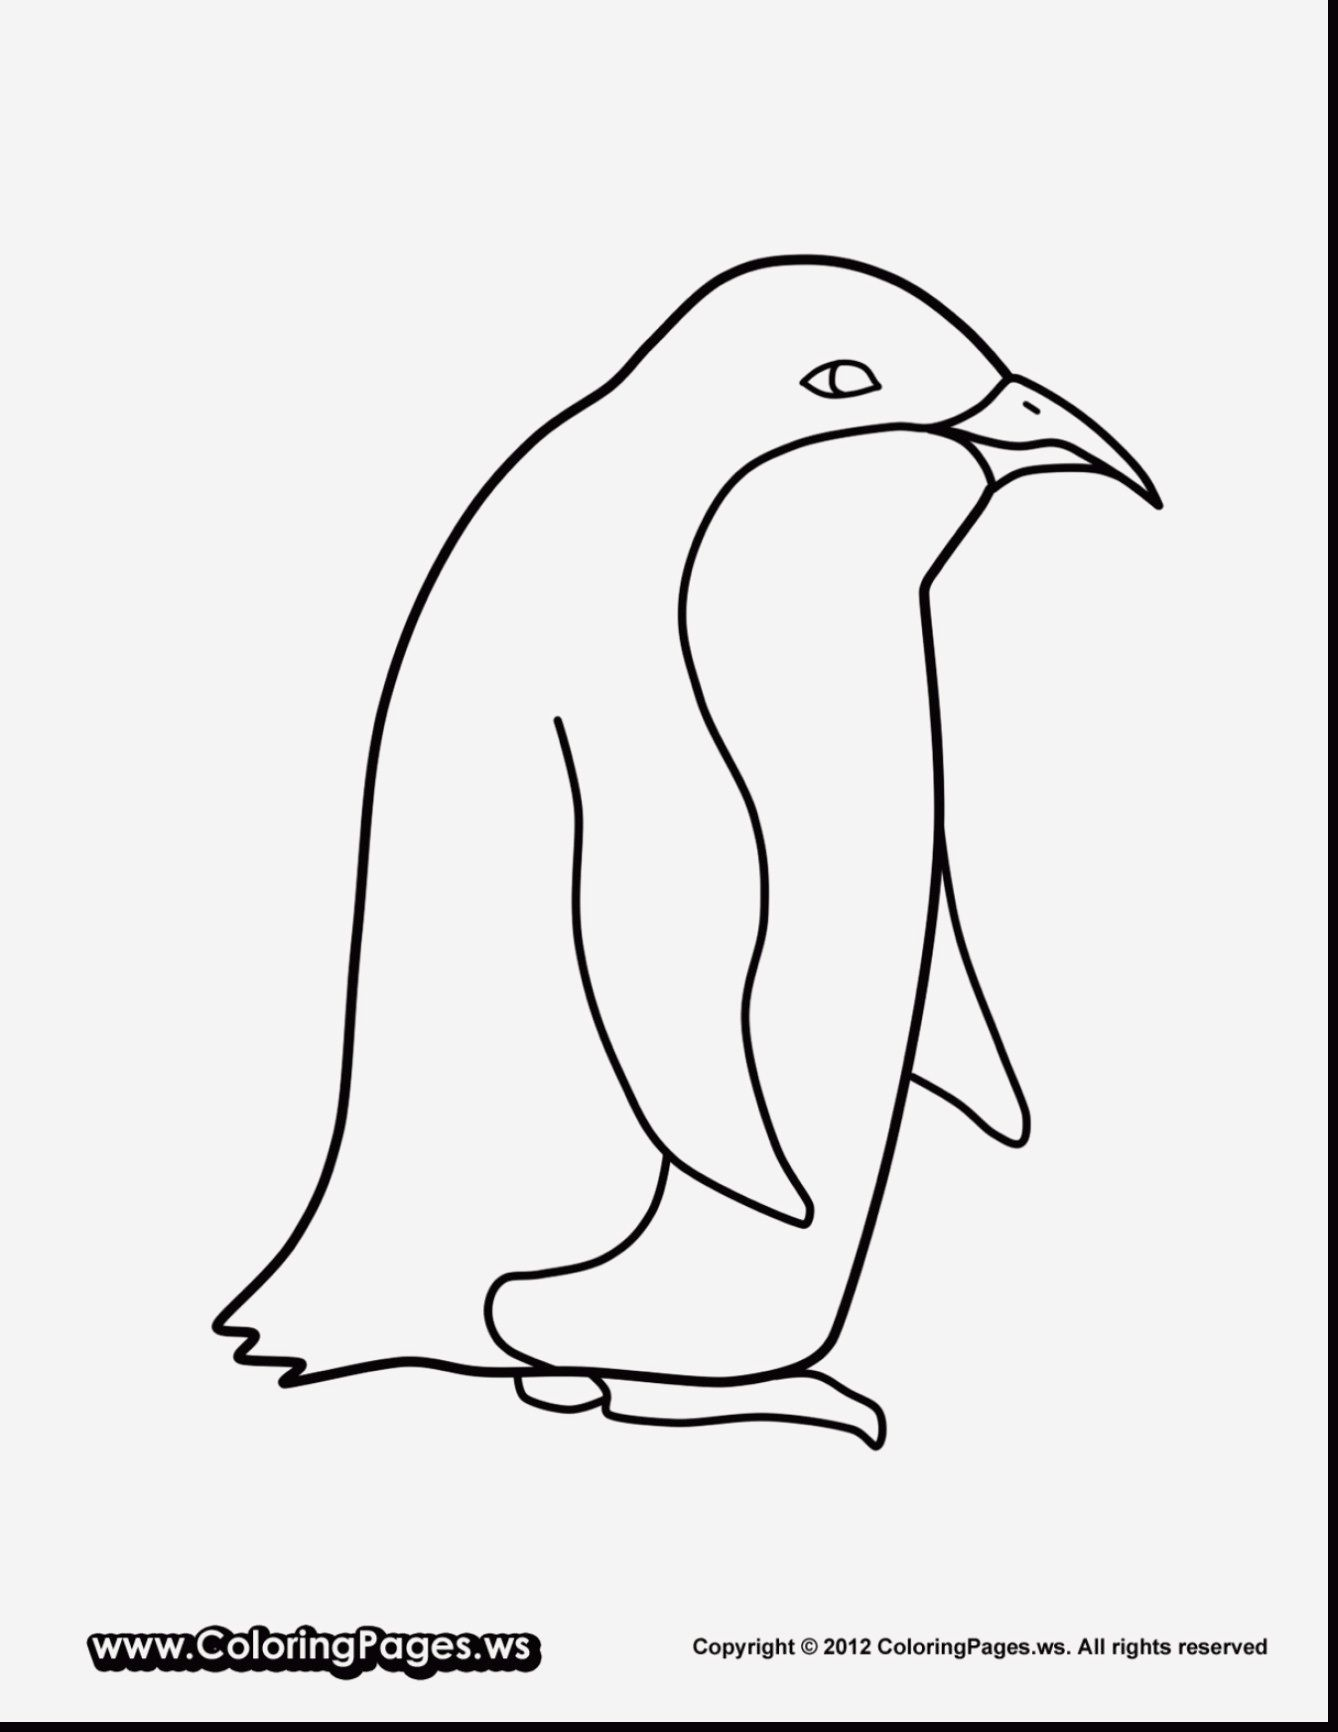 18 Dltk Alphabet Coloring Pages Penguin Coloring Pages Coloring Pages Animal Templates